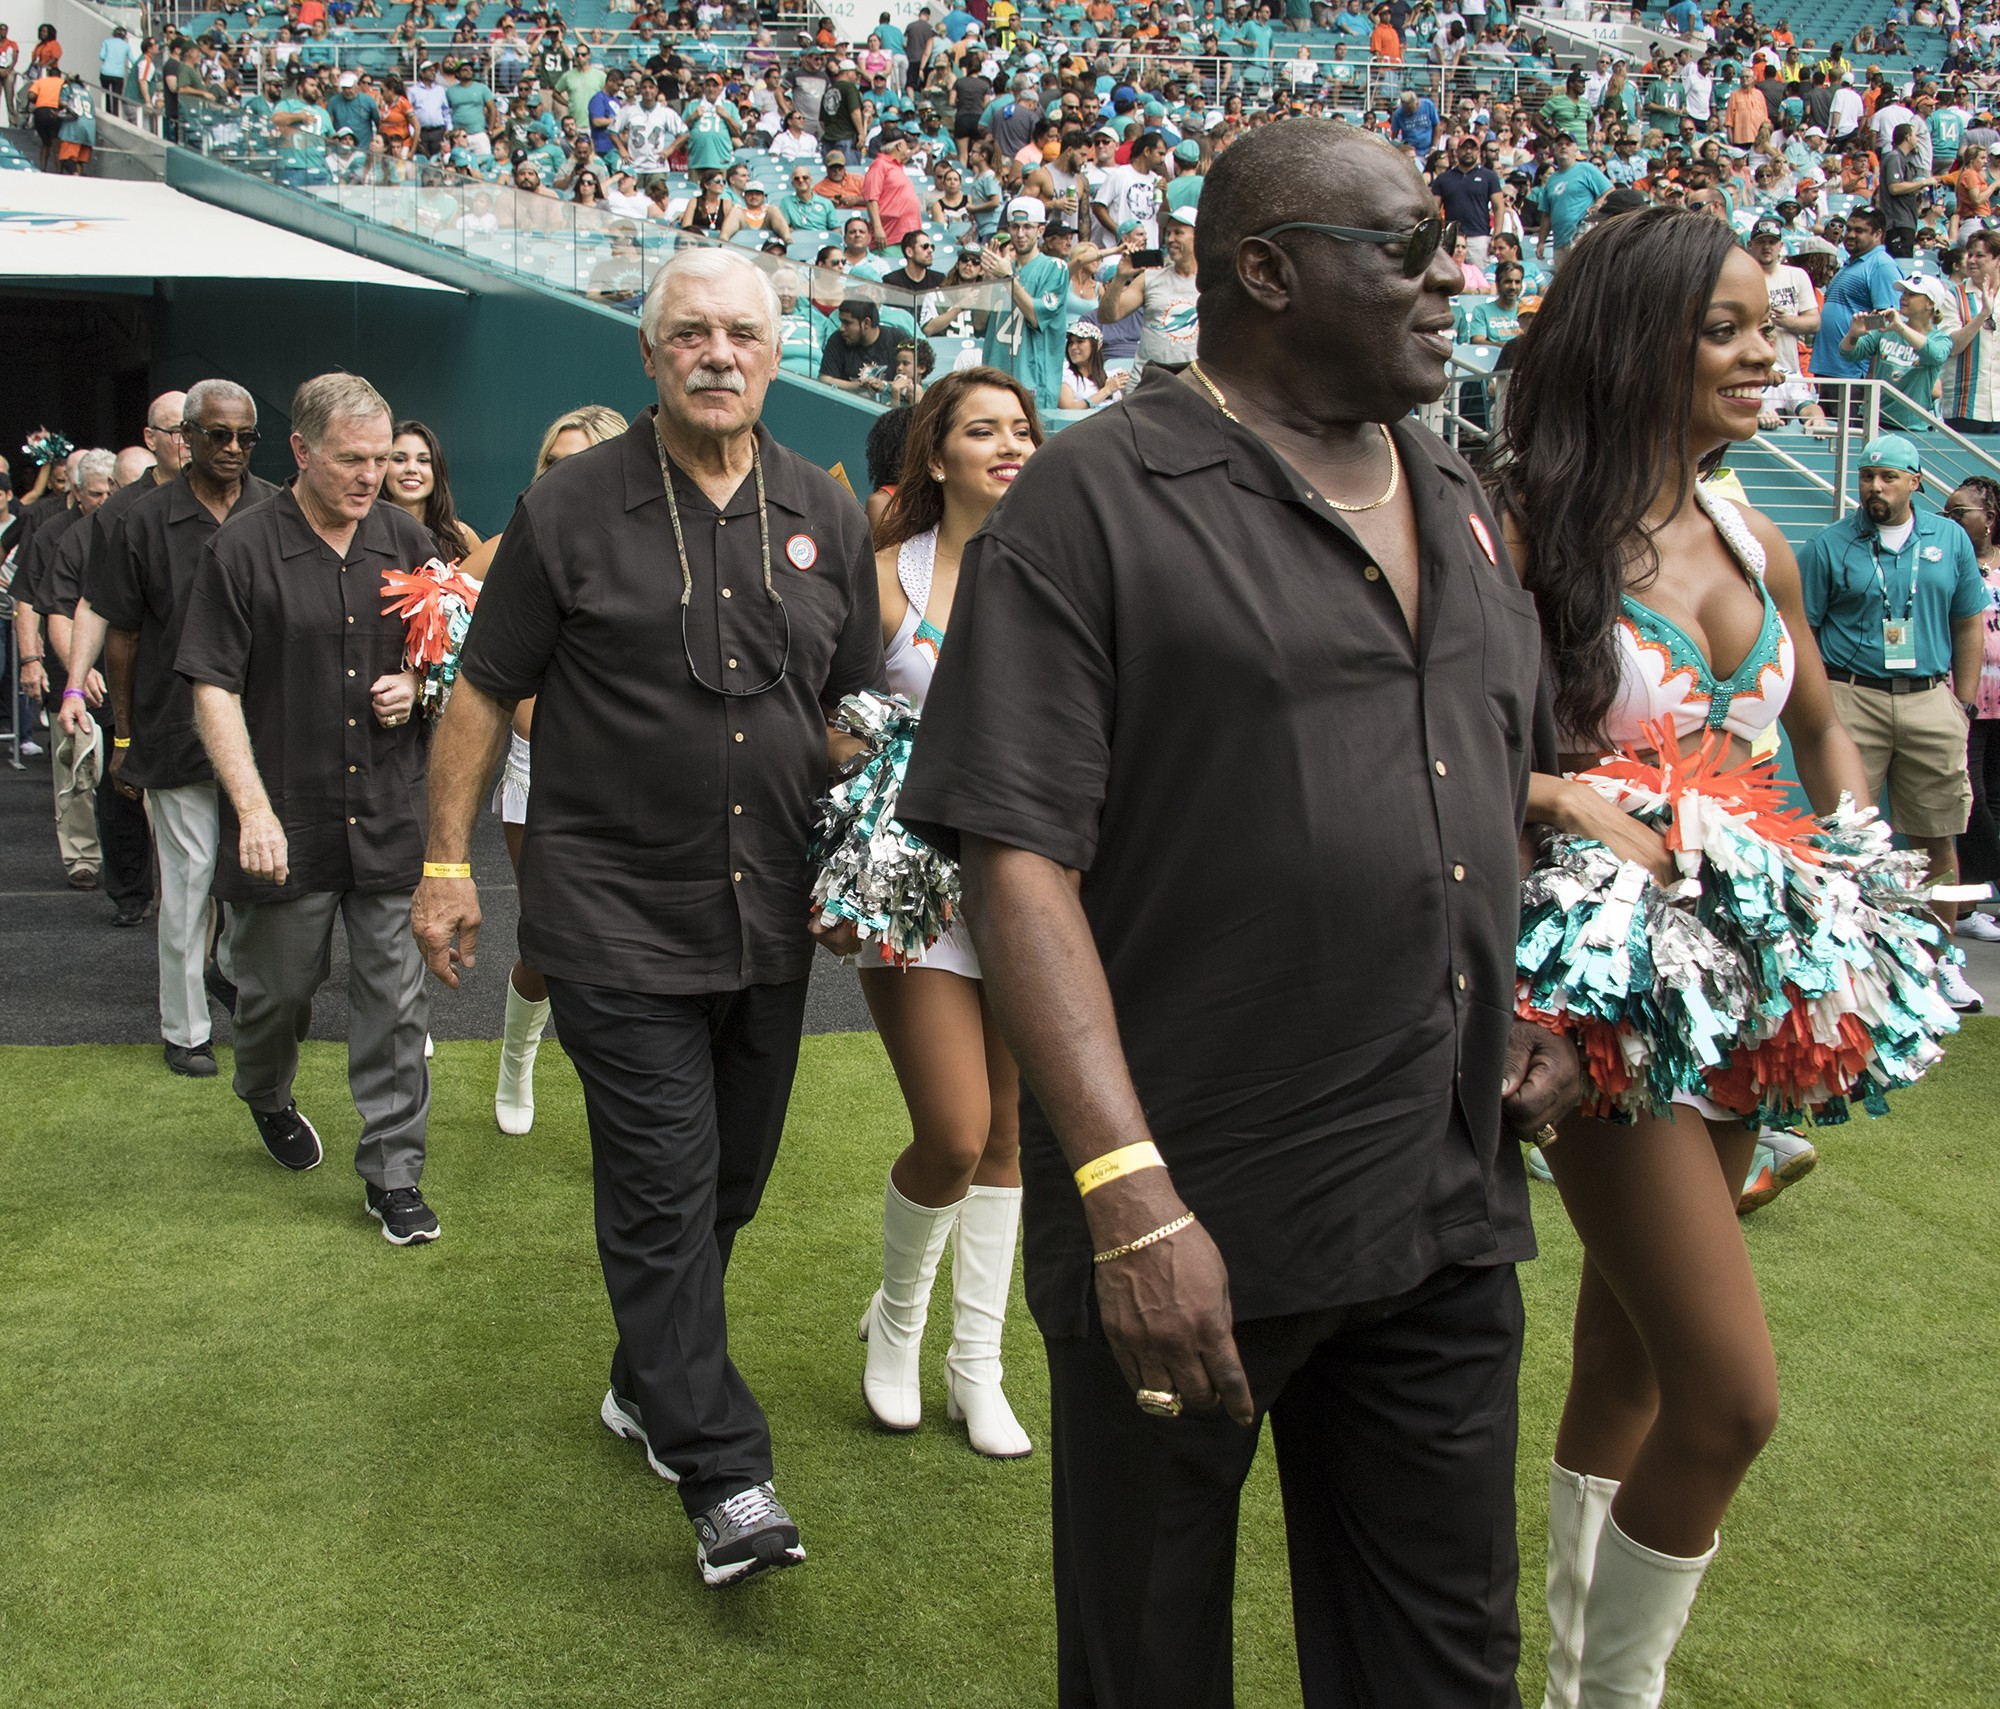 Members of the Perfect 72 Dolphins team are escorted onto the field during half time ceremonies of an NFL football game on Sunday, Oct. 22, 2017, in Miami Gardens, Fla. (Donald Edgar/El Latino Digital)